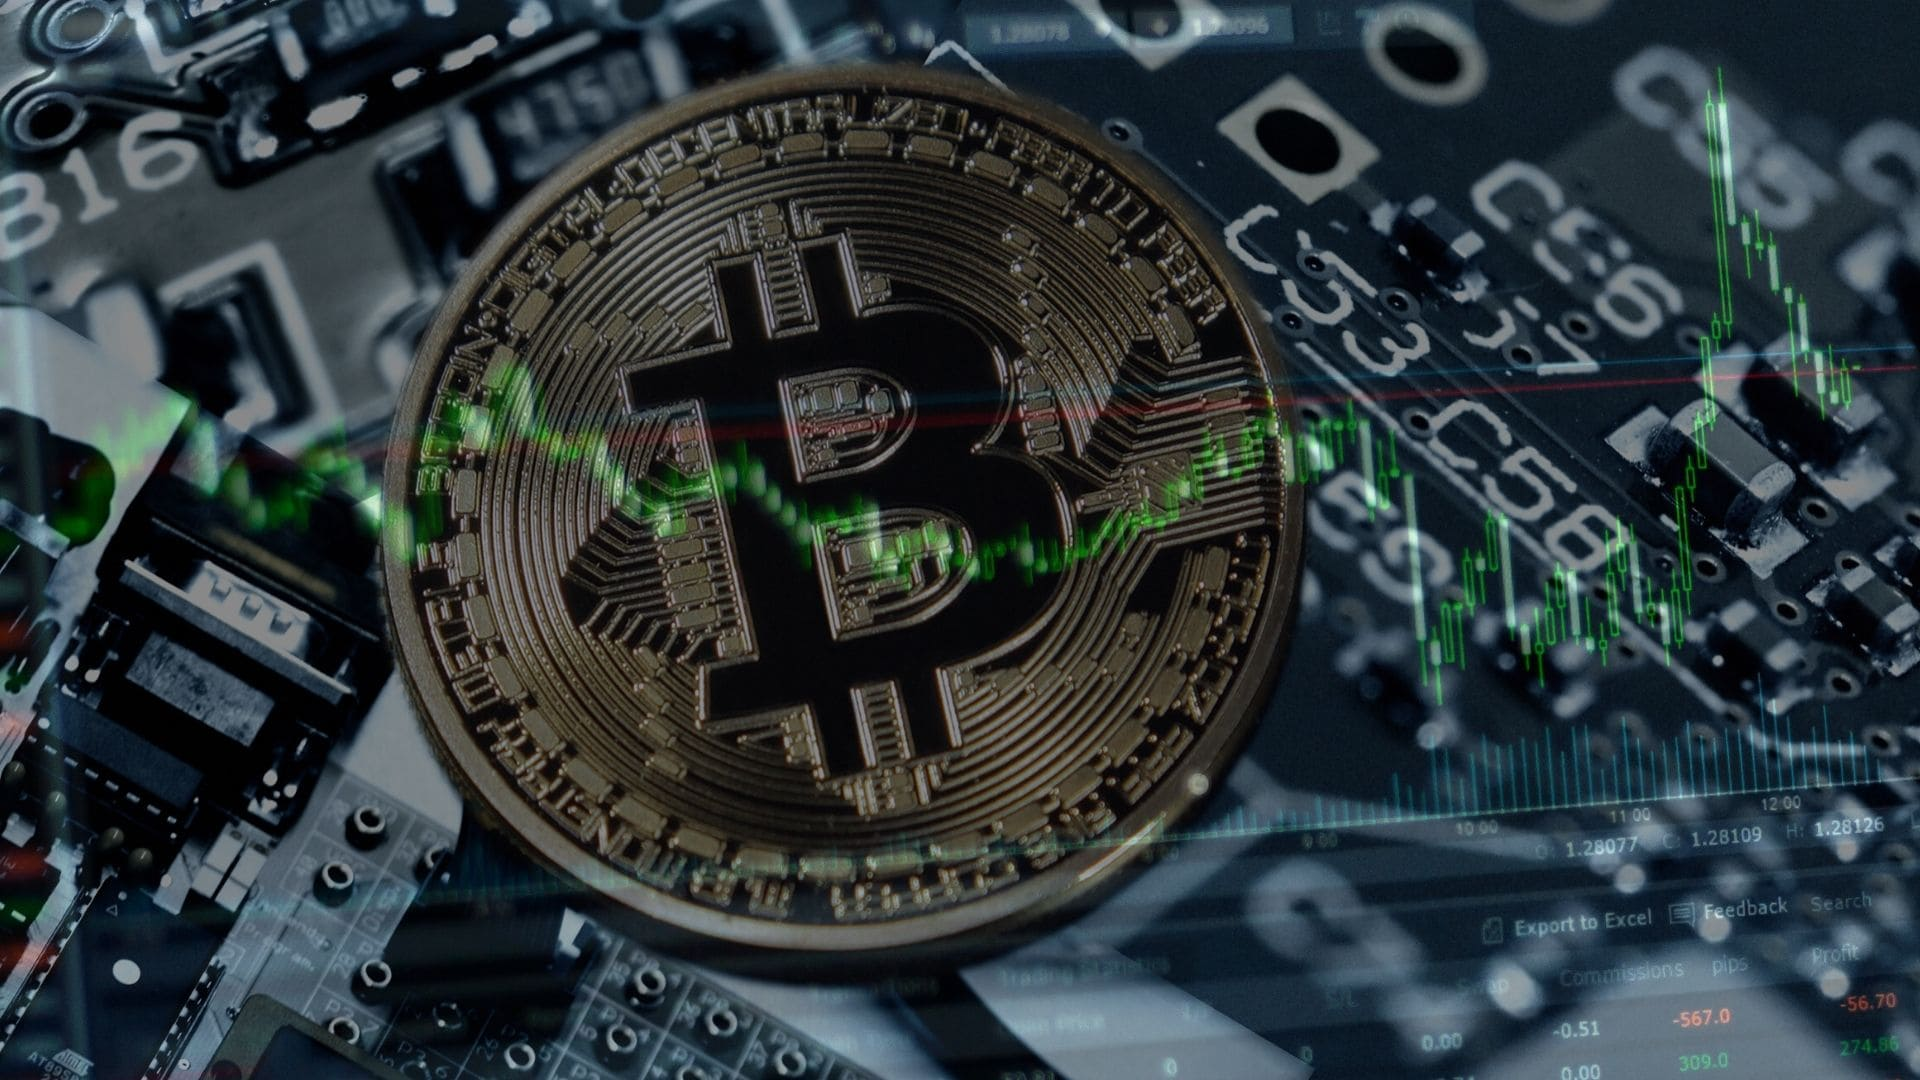 Etherium Creator Made Two Worst Bets on Bitcoin Price Ever